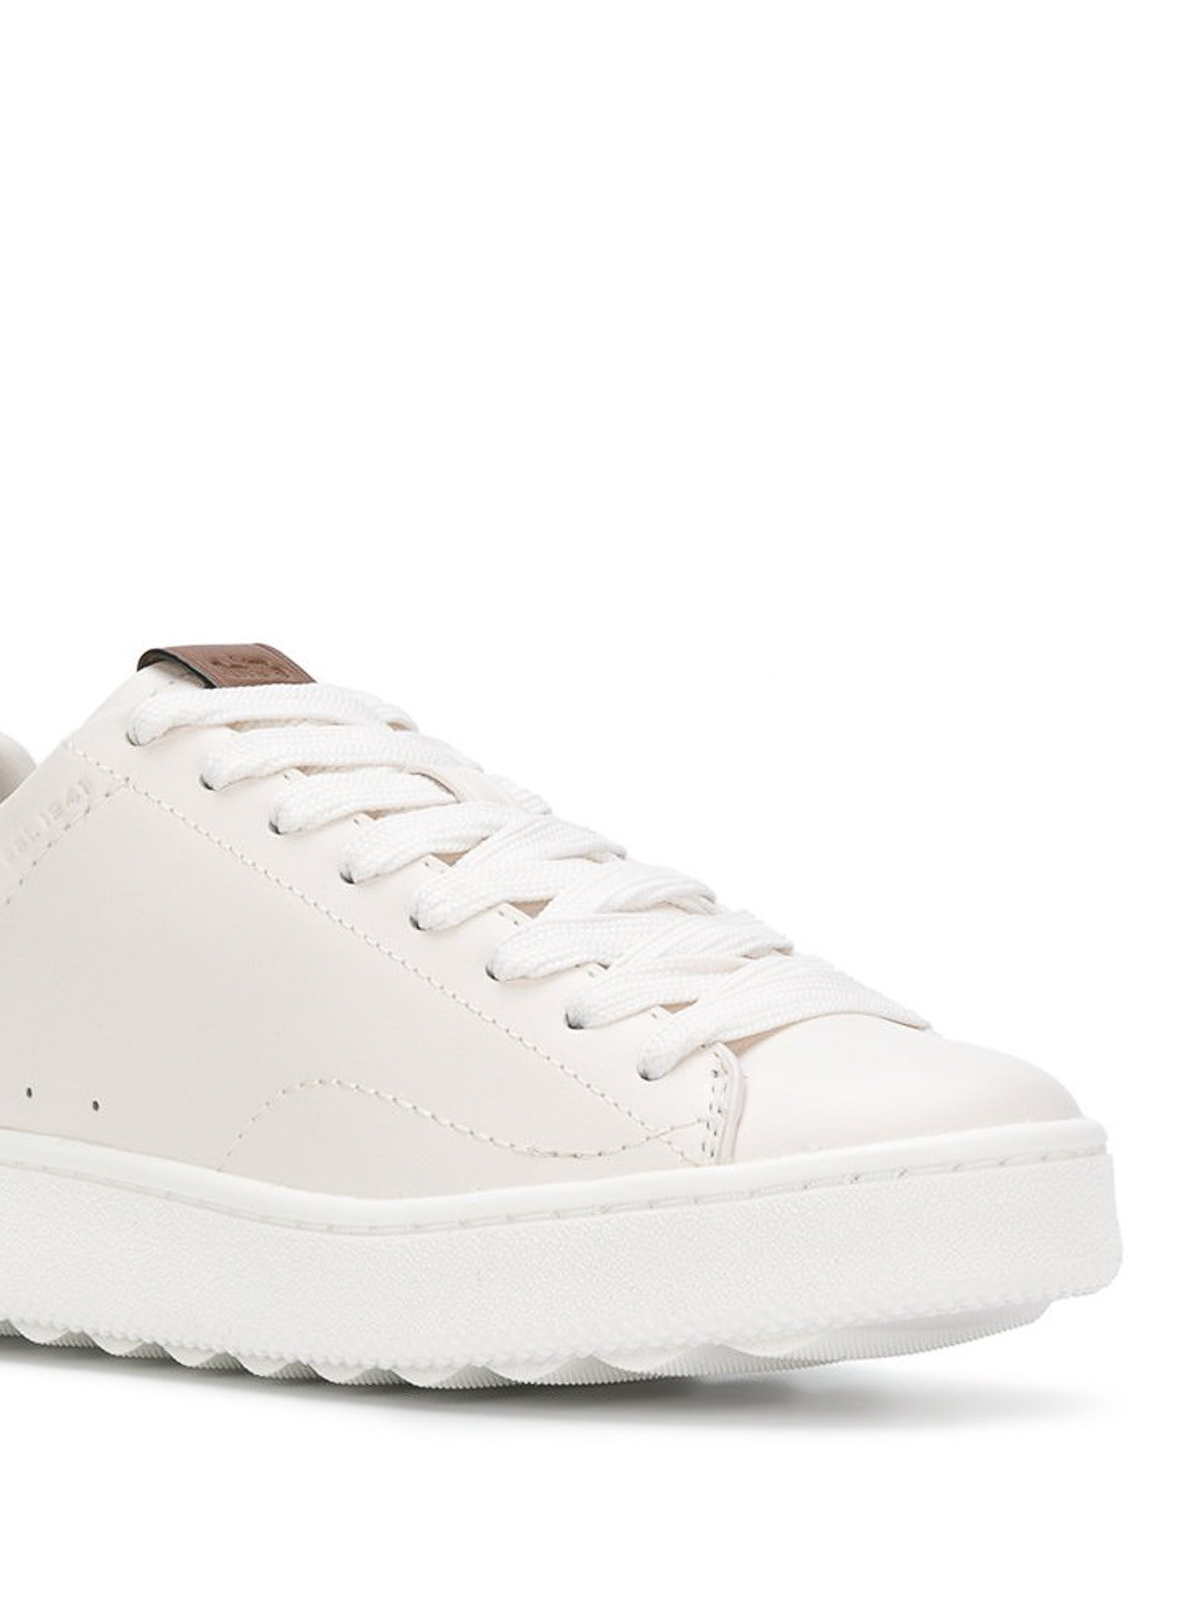 Coach - C101 leather sneakers